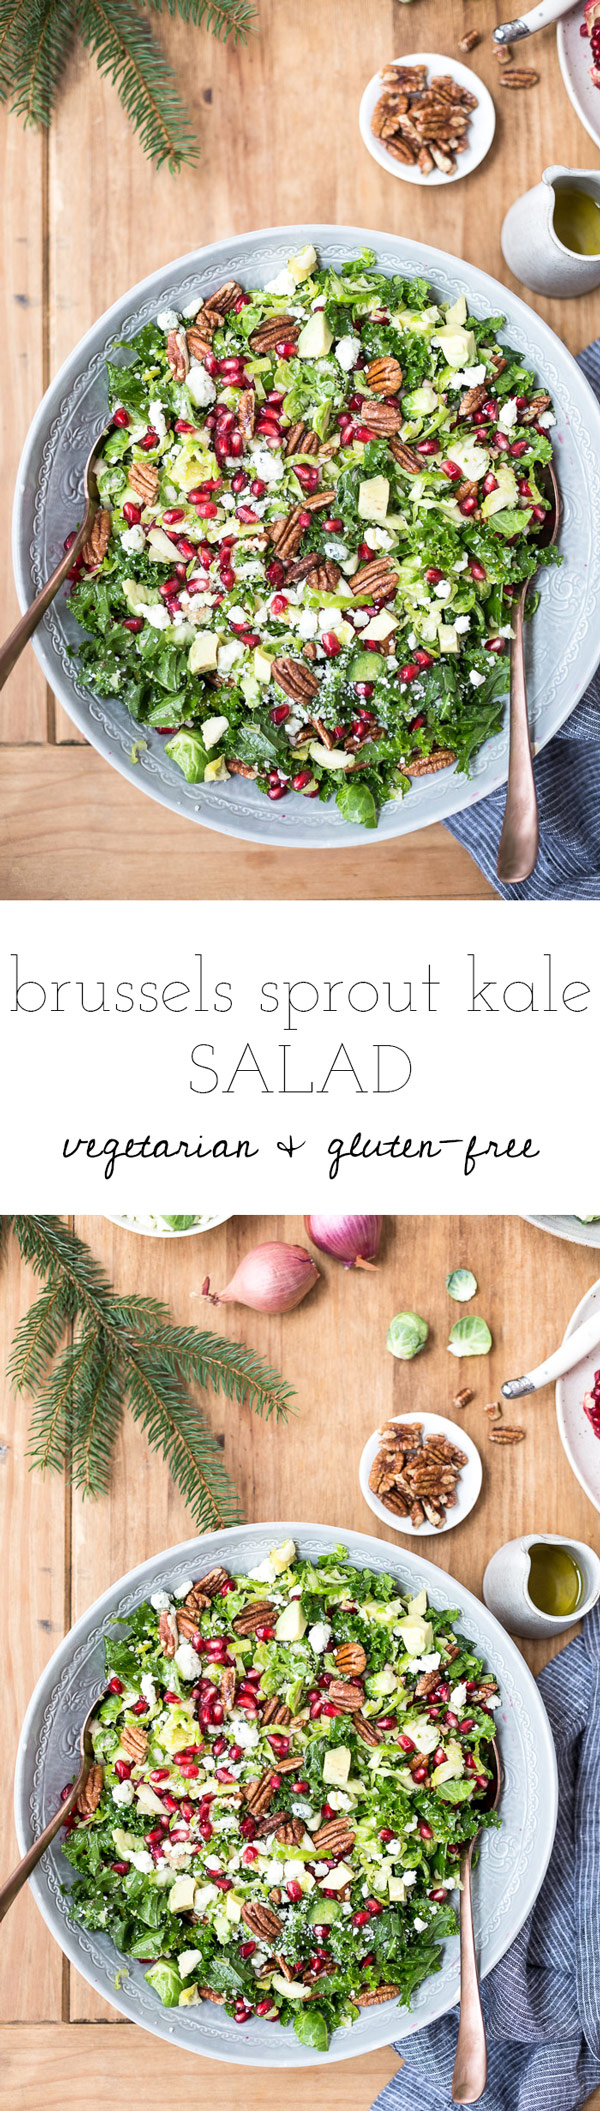 Brussels Sprout Kale Salad - A vegetarian salad made with shredded brussels sprouts, kale, maple-roasted pecans, and pomegranate arils. A great way to add color to your holiday table.